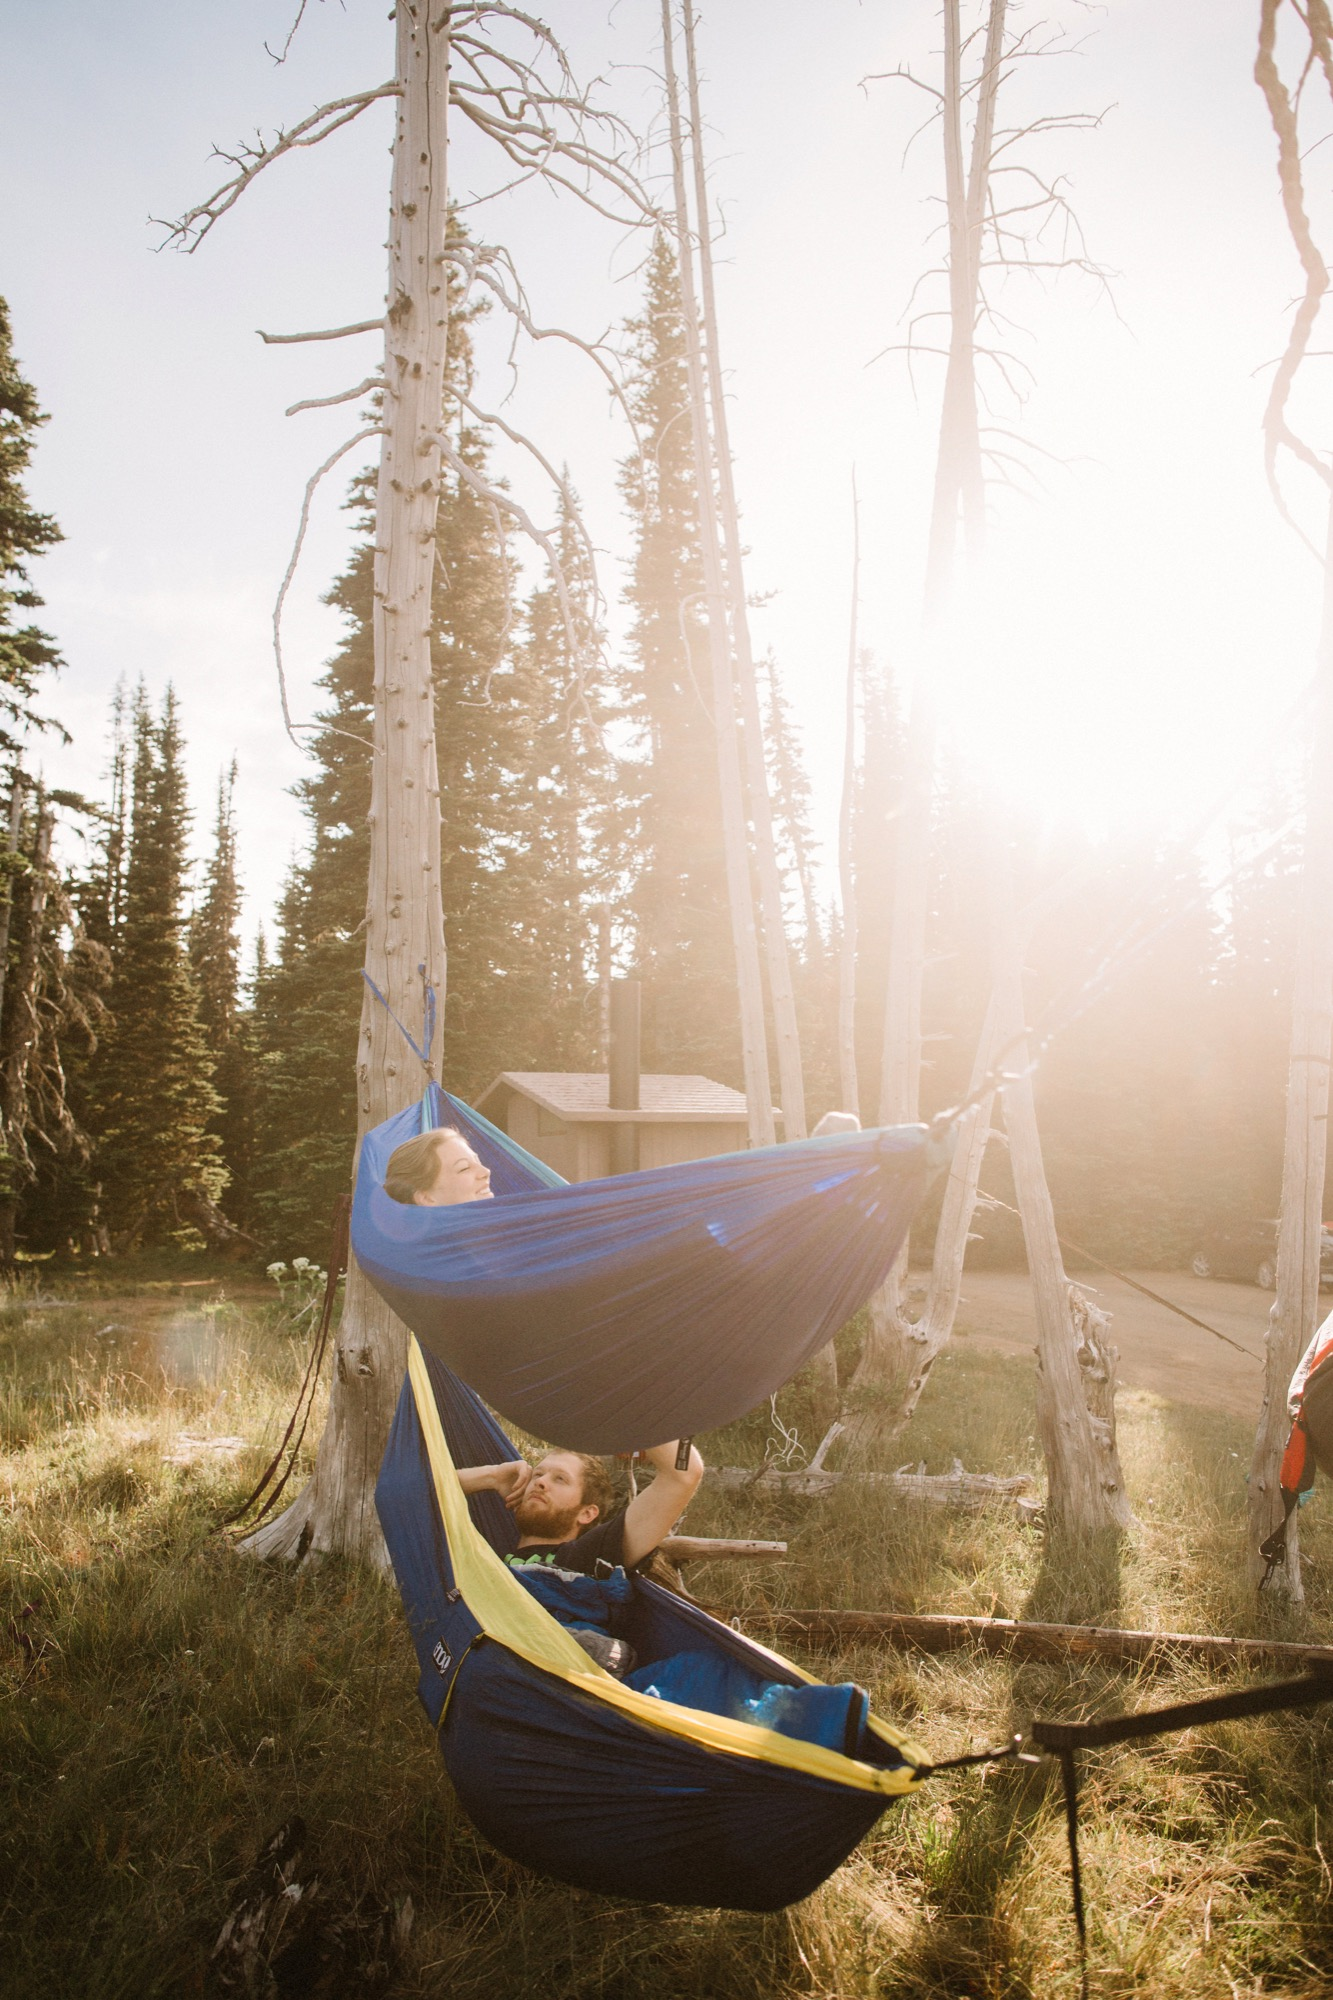 Adventure photographer and wilderness guide—Balkin set up camp for the couple / Photo by Greg Balkin